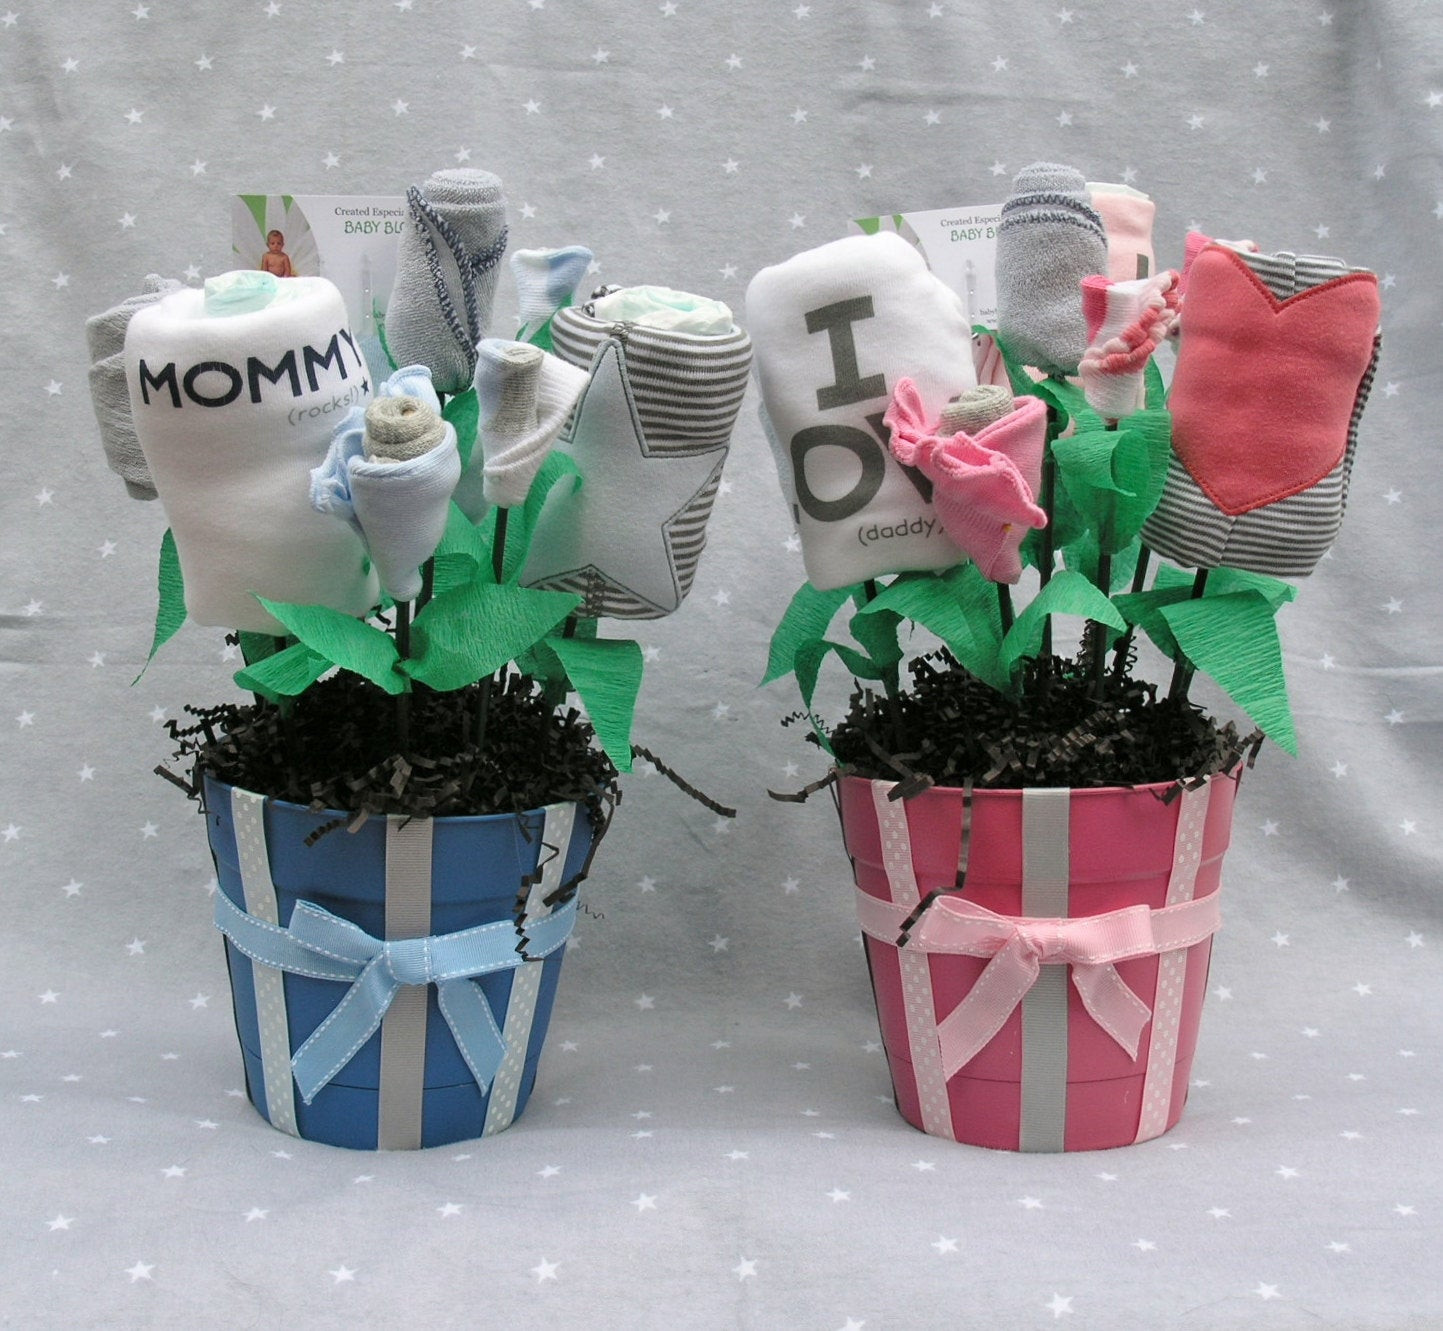 Best ideas about Twin Baby Gift Ideas . Save or Pin Kitchen & Dining Now.